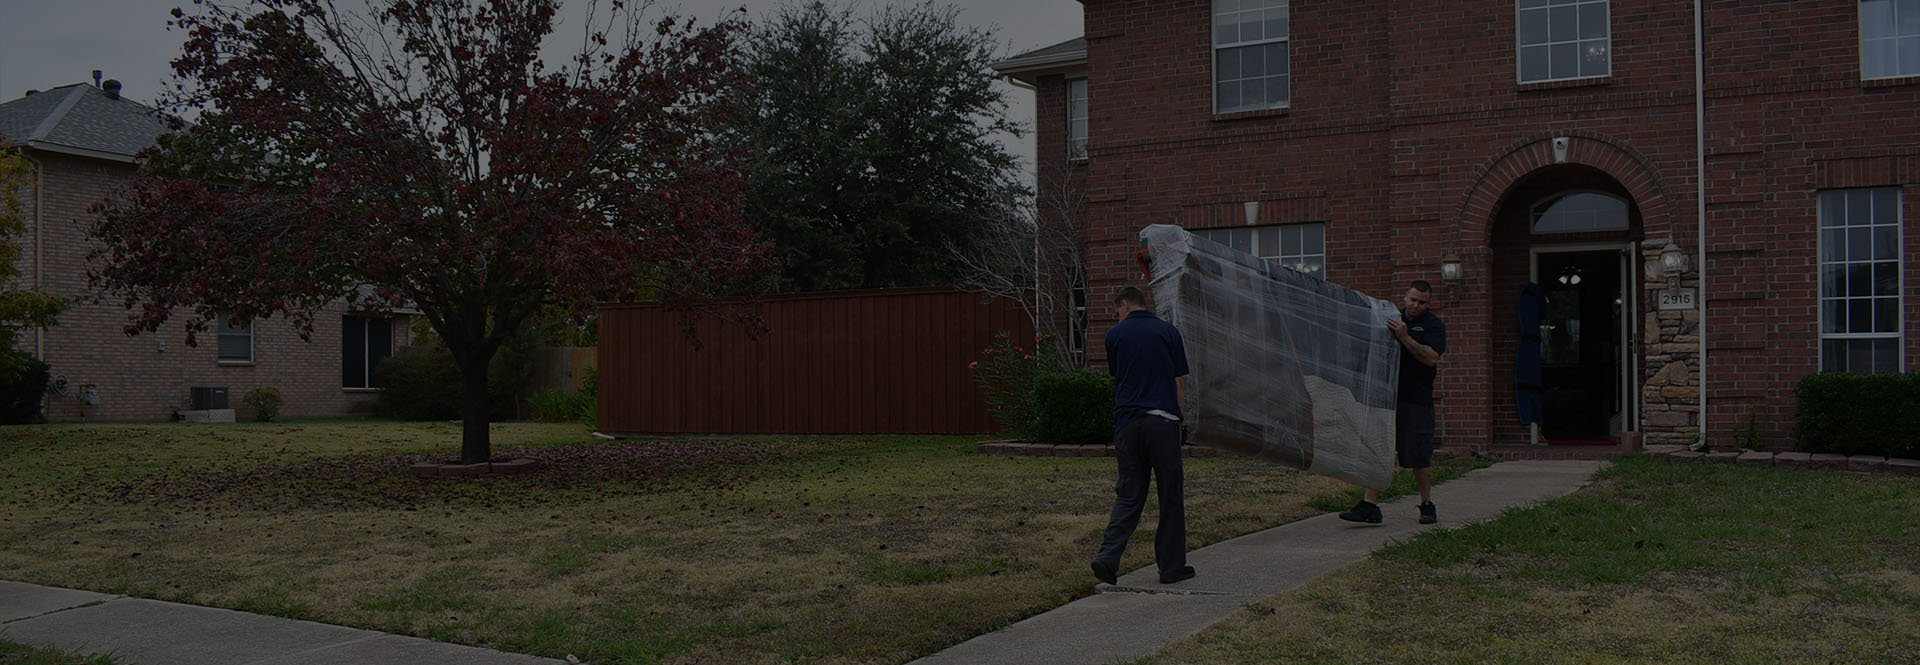 Affordable Movers In Dallas Tx Around The Clock Moving